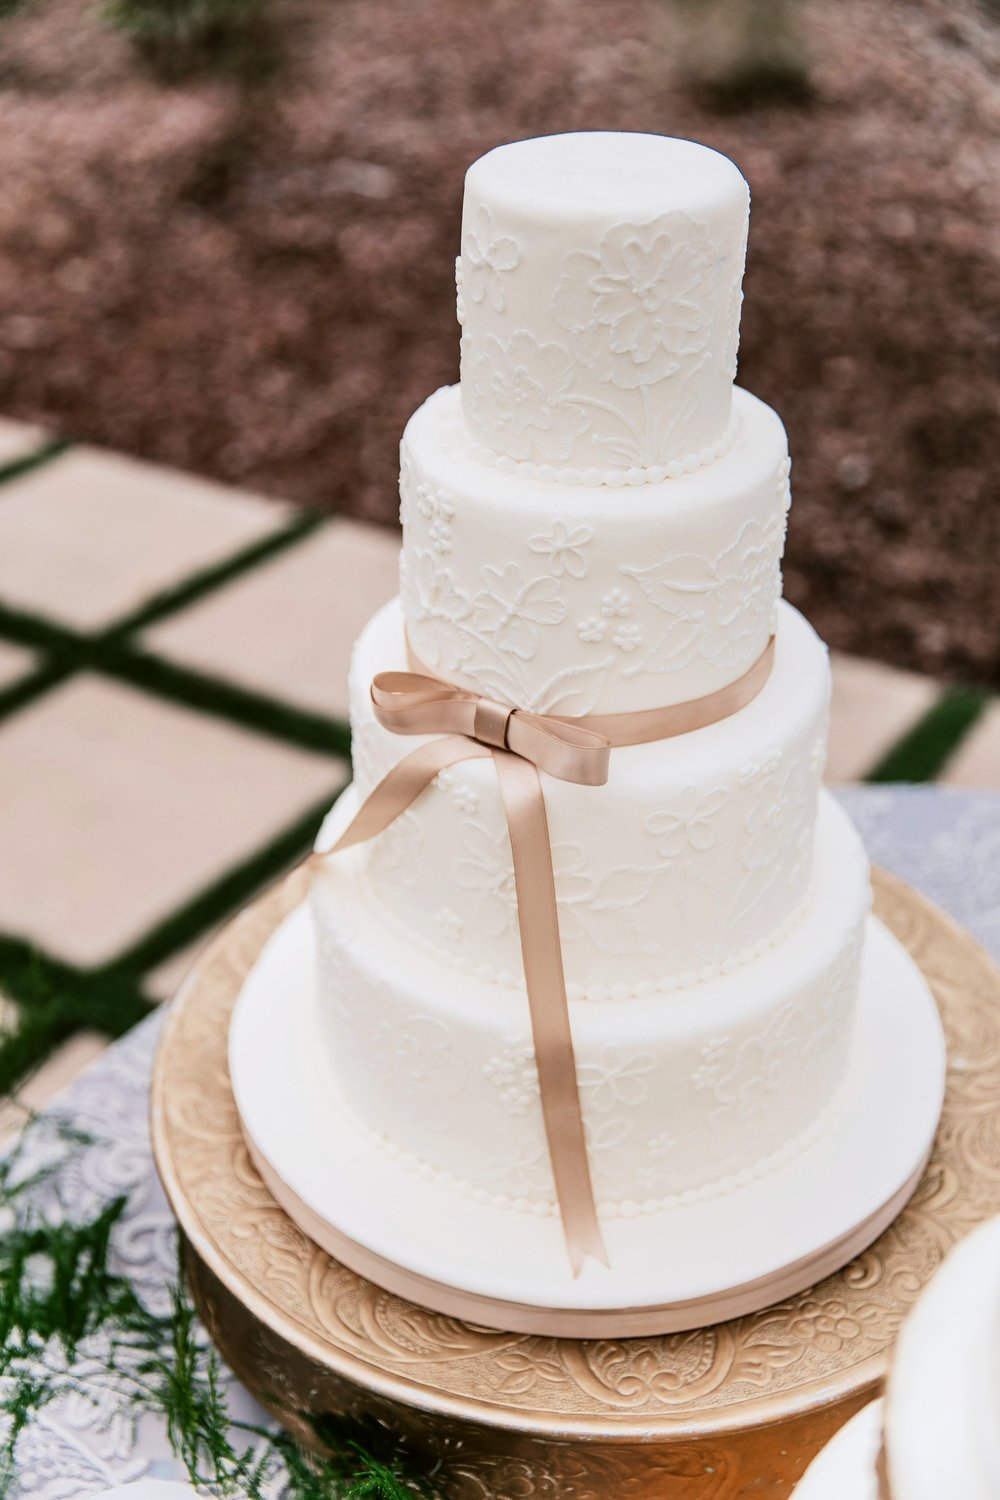 All white fondant wedding cake | Edible Art Bakery of Raleigh